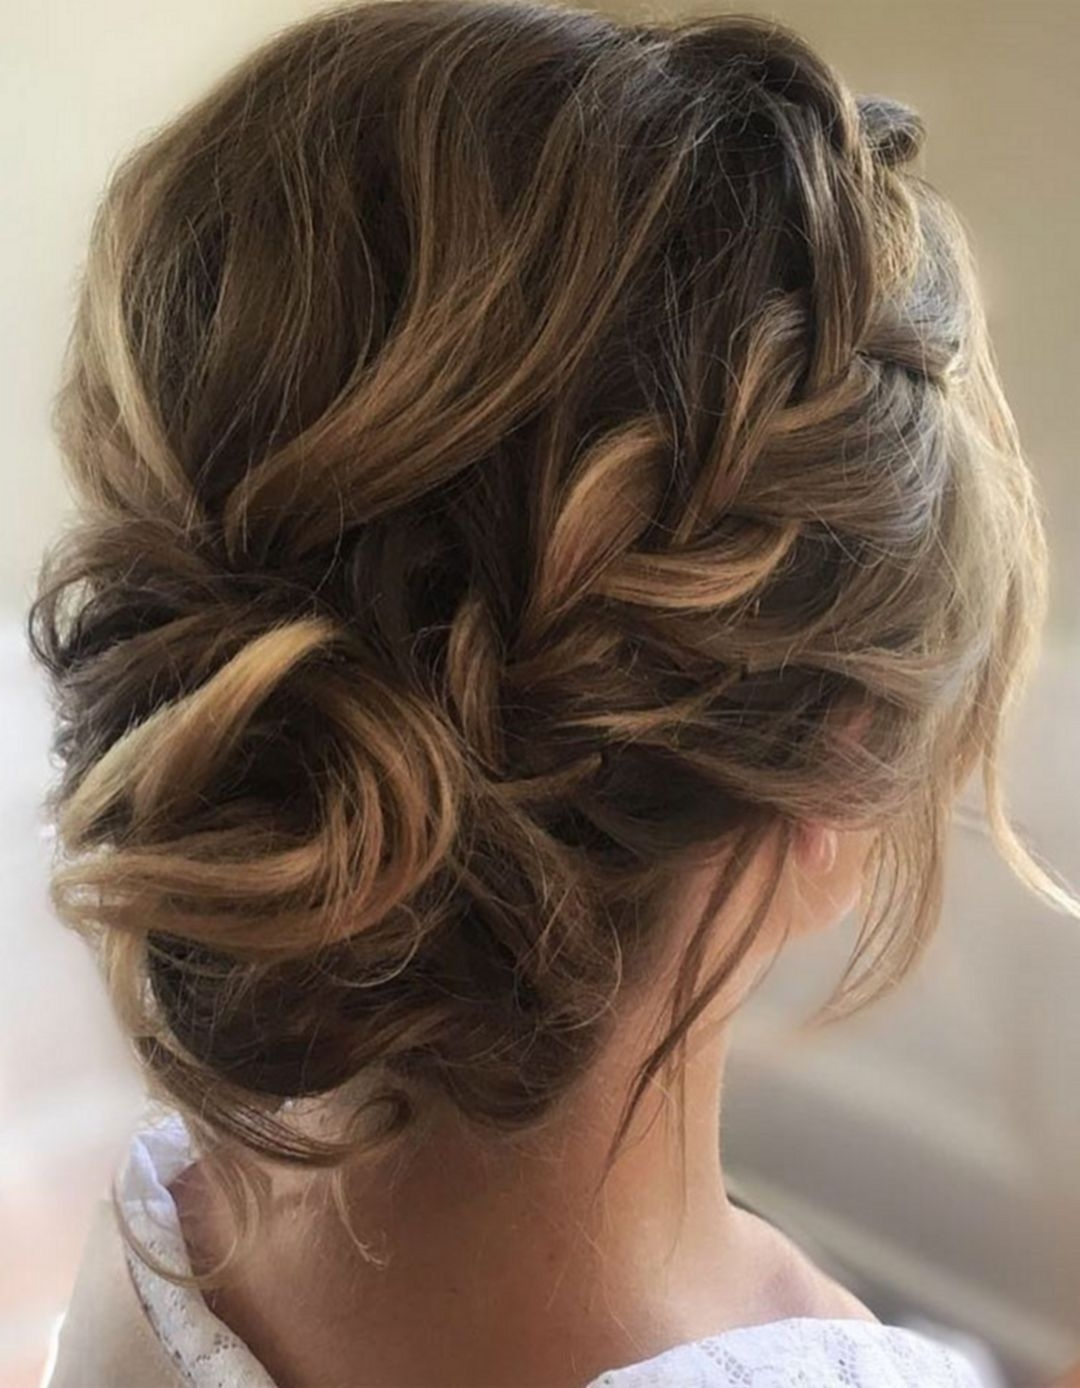 60+ Wonderful Bridesmaid Updo Hairstyles | Bridesmaid Updo With Regard To Long Hair Updo Hairstyles For Over  (View 12 of 15)